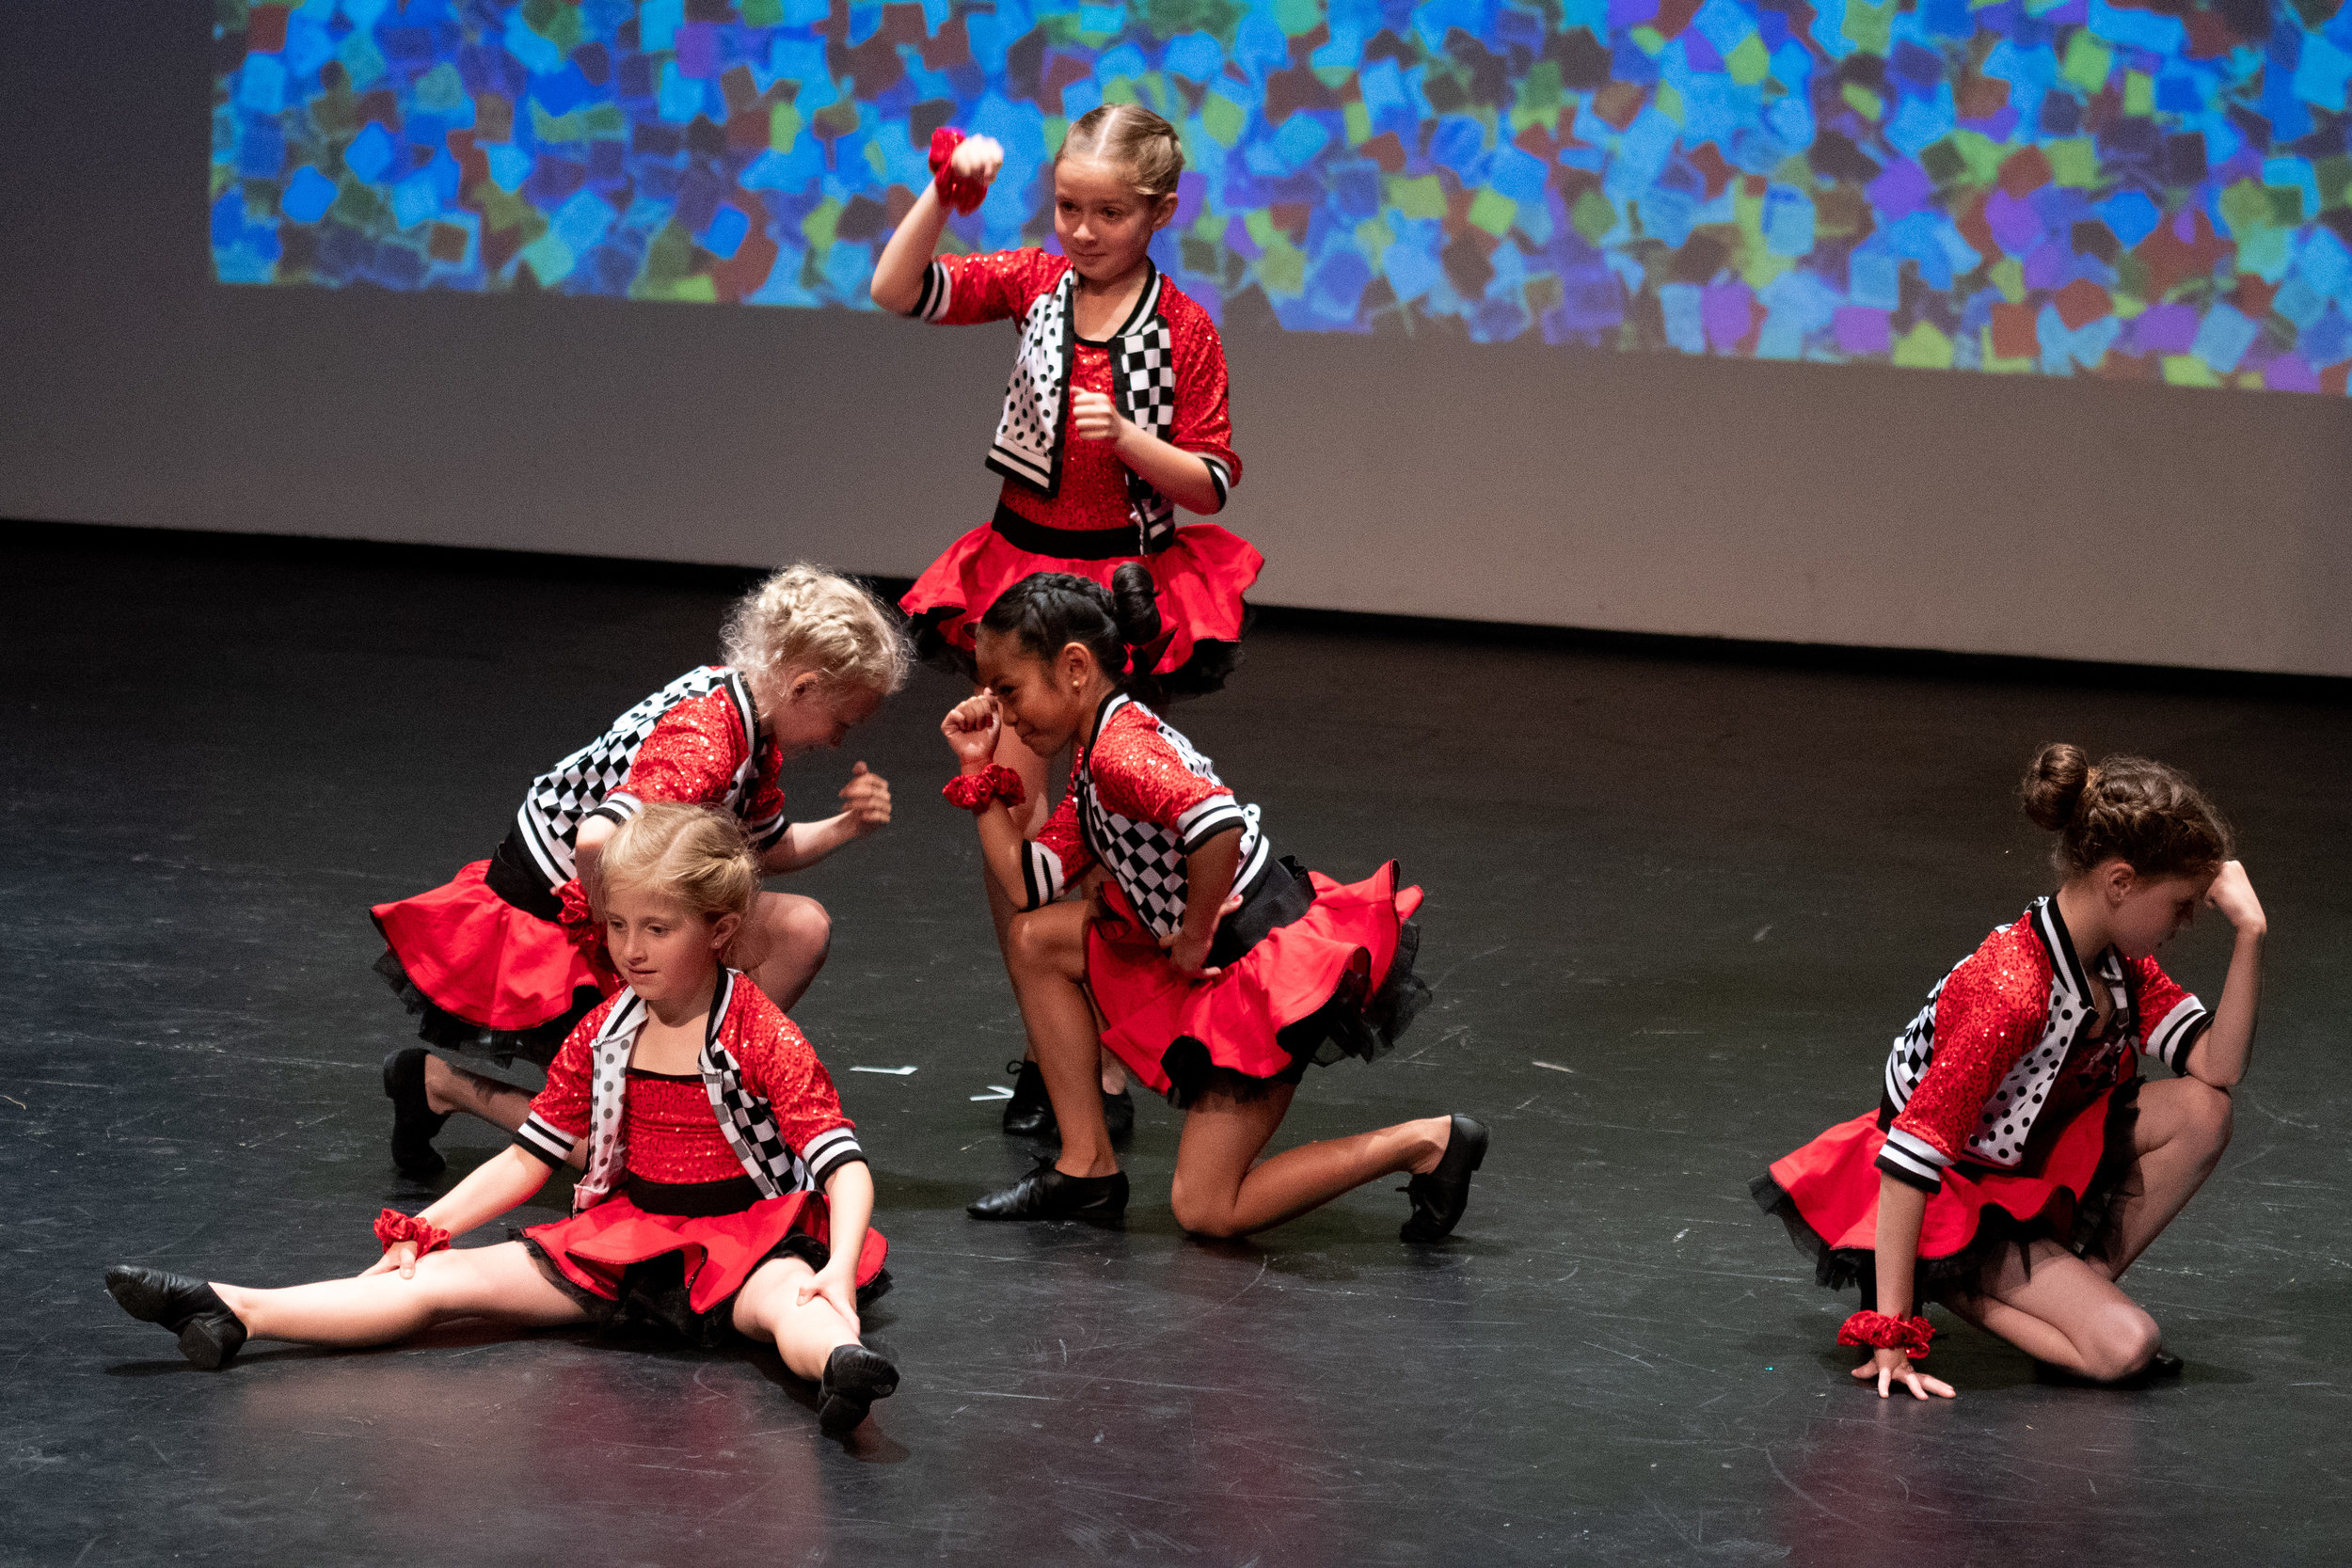 RUBY- Junior 2 Jazz (8-9 years) - $450/yeaThis class will feature a fun and upbeat warm up, across the floor, and combos taught along with time to create and learn the skills of choreography with peer evaluation and encouragement. The dances will be tasteful and clean with a focus on learning technique of classical jazz dance. This will be done in an age-appropriate, clean, safe and exciting environment. No experience is required.Every Wednesday from6:30-7:30 pmDiva Fitness & Pilates Studio15141 Russell AvenueWhite Rock, BCInstructor: Ms. Jada Paul